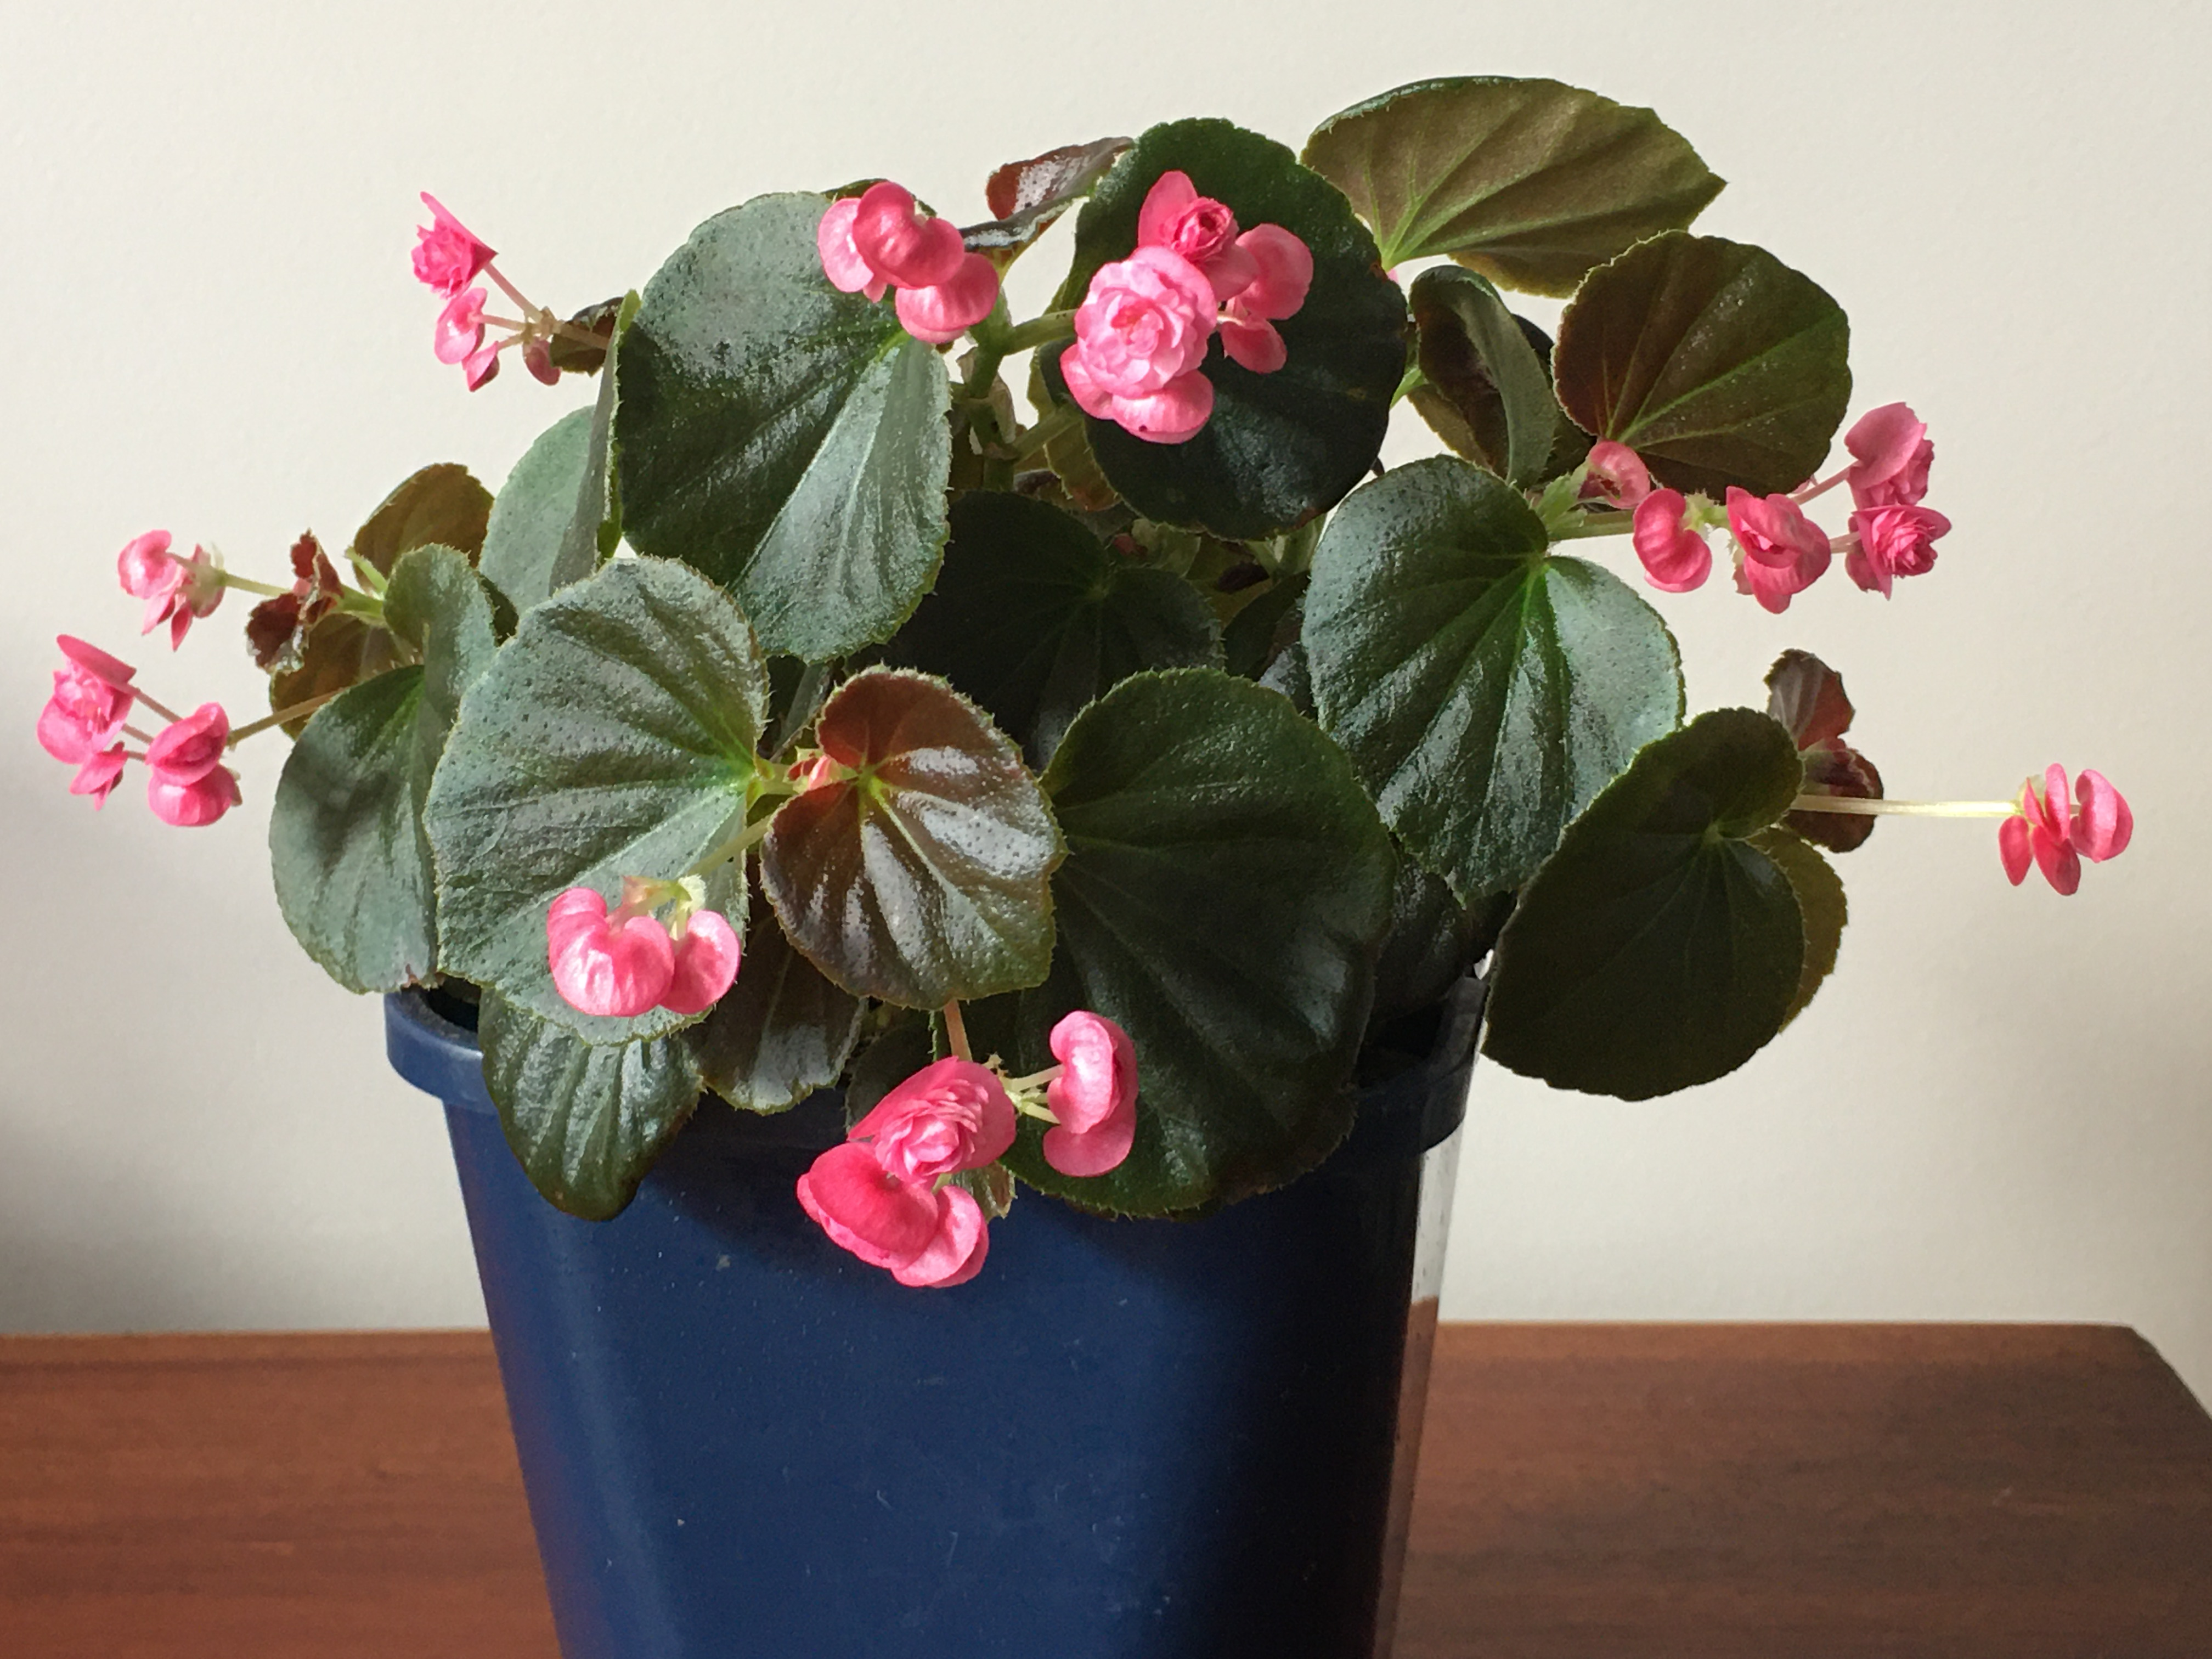 3. Container plant... flowering or foliage only